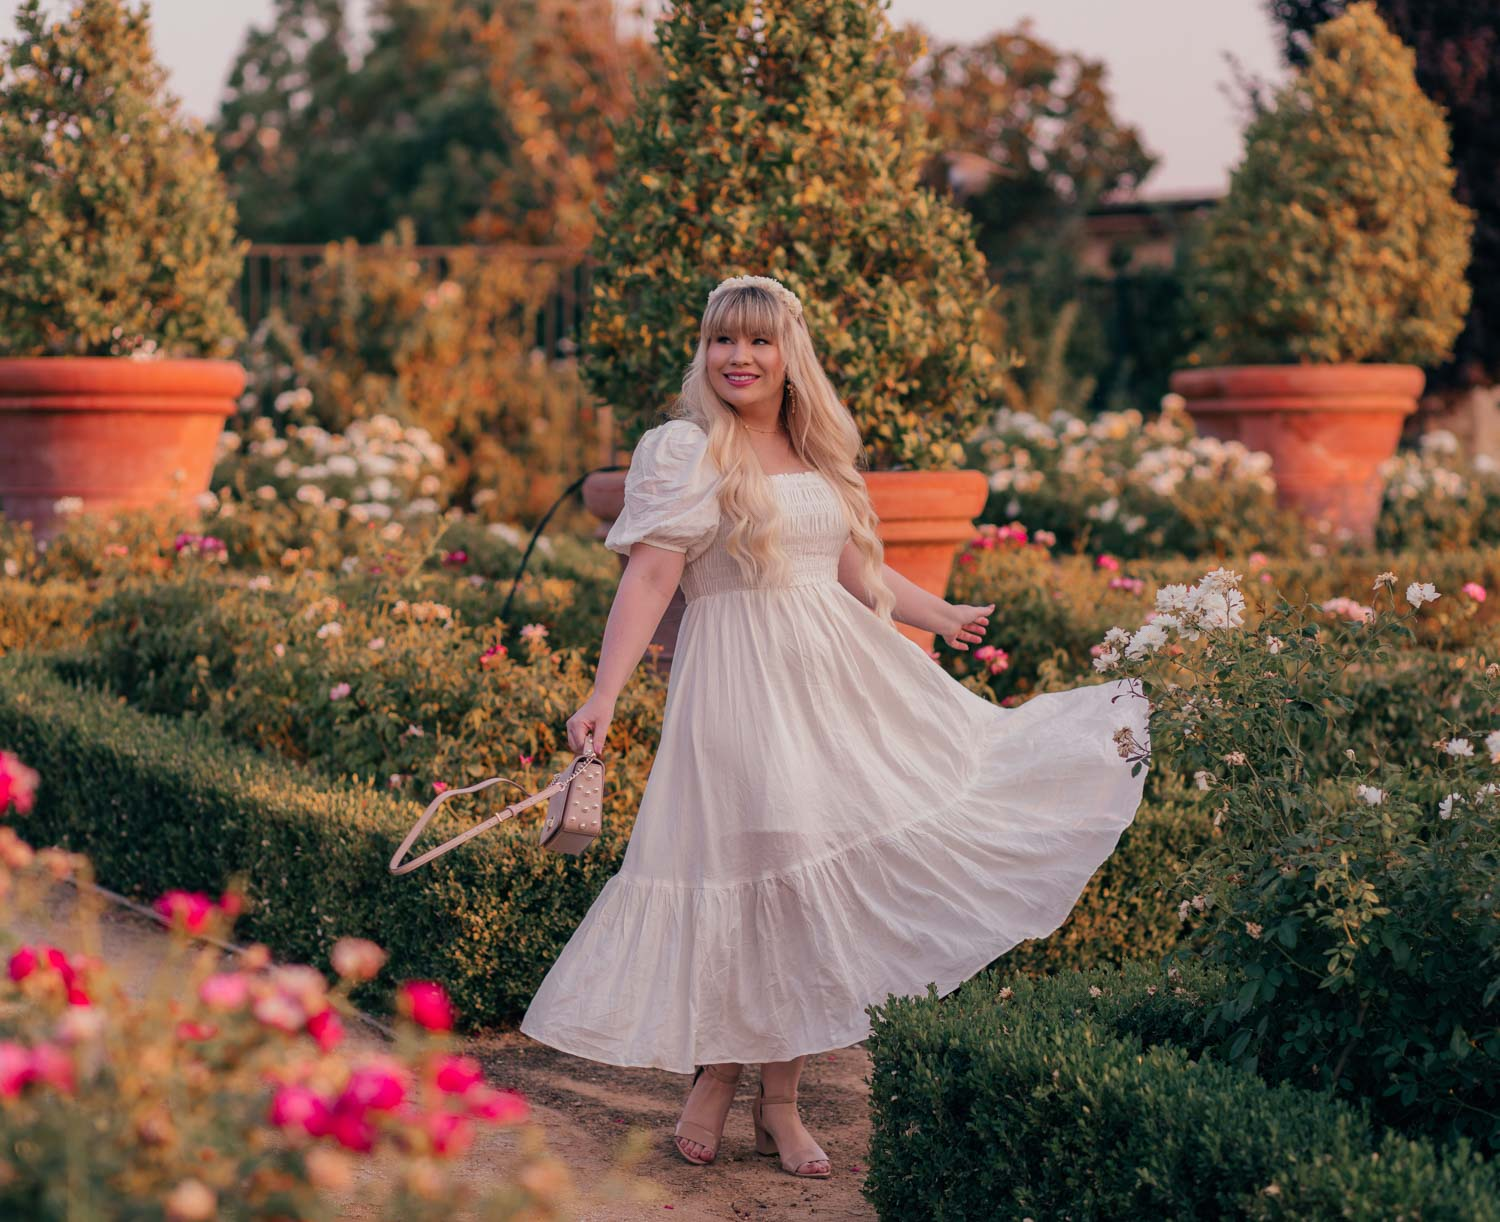 Feminine Fashion Blogger Elizabeth Hugen of Lizzie in Lace shares a cottagecore outfit idea including this white puff sleeve dress from Chicwish